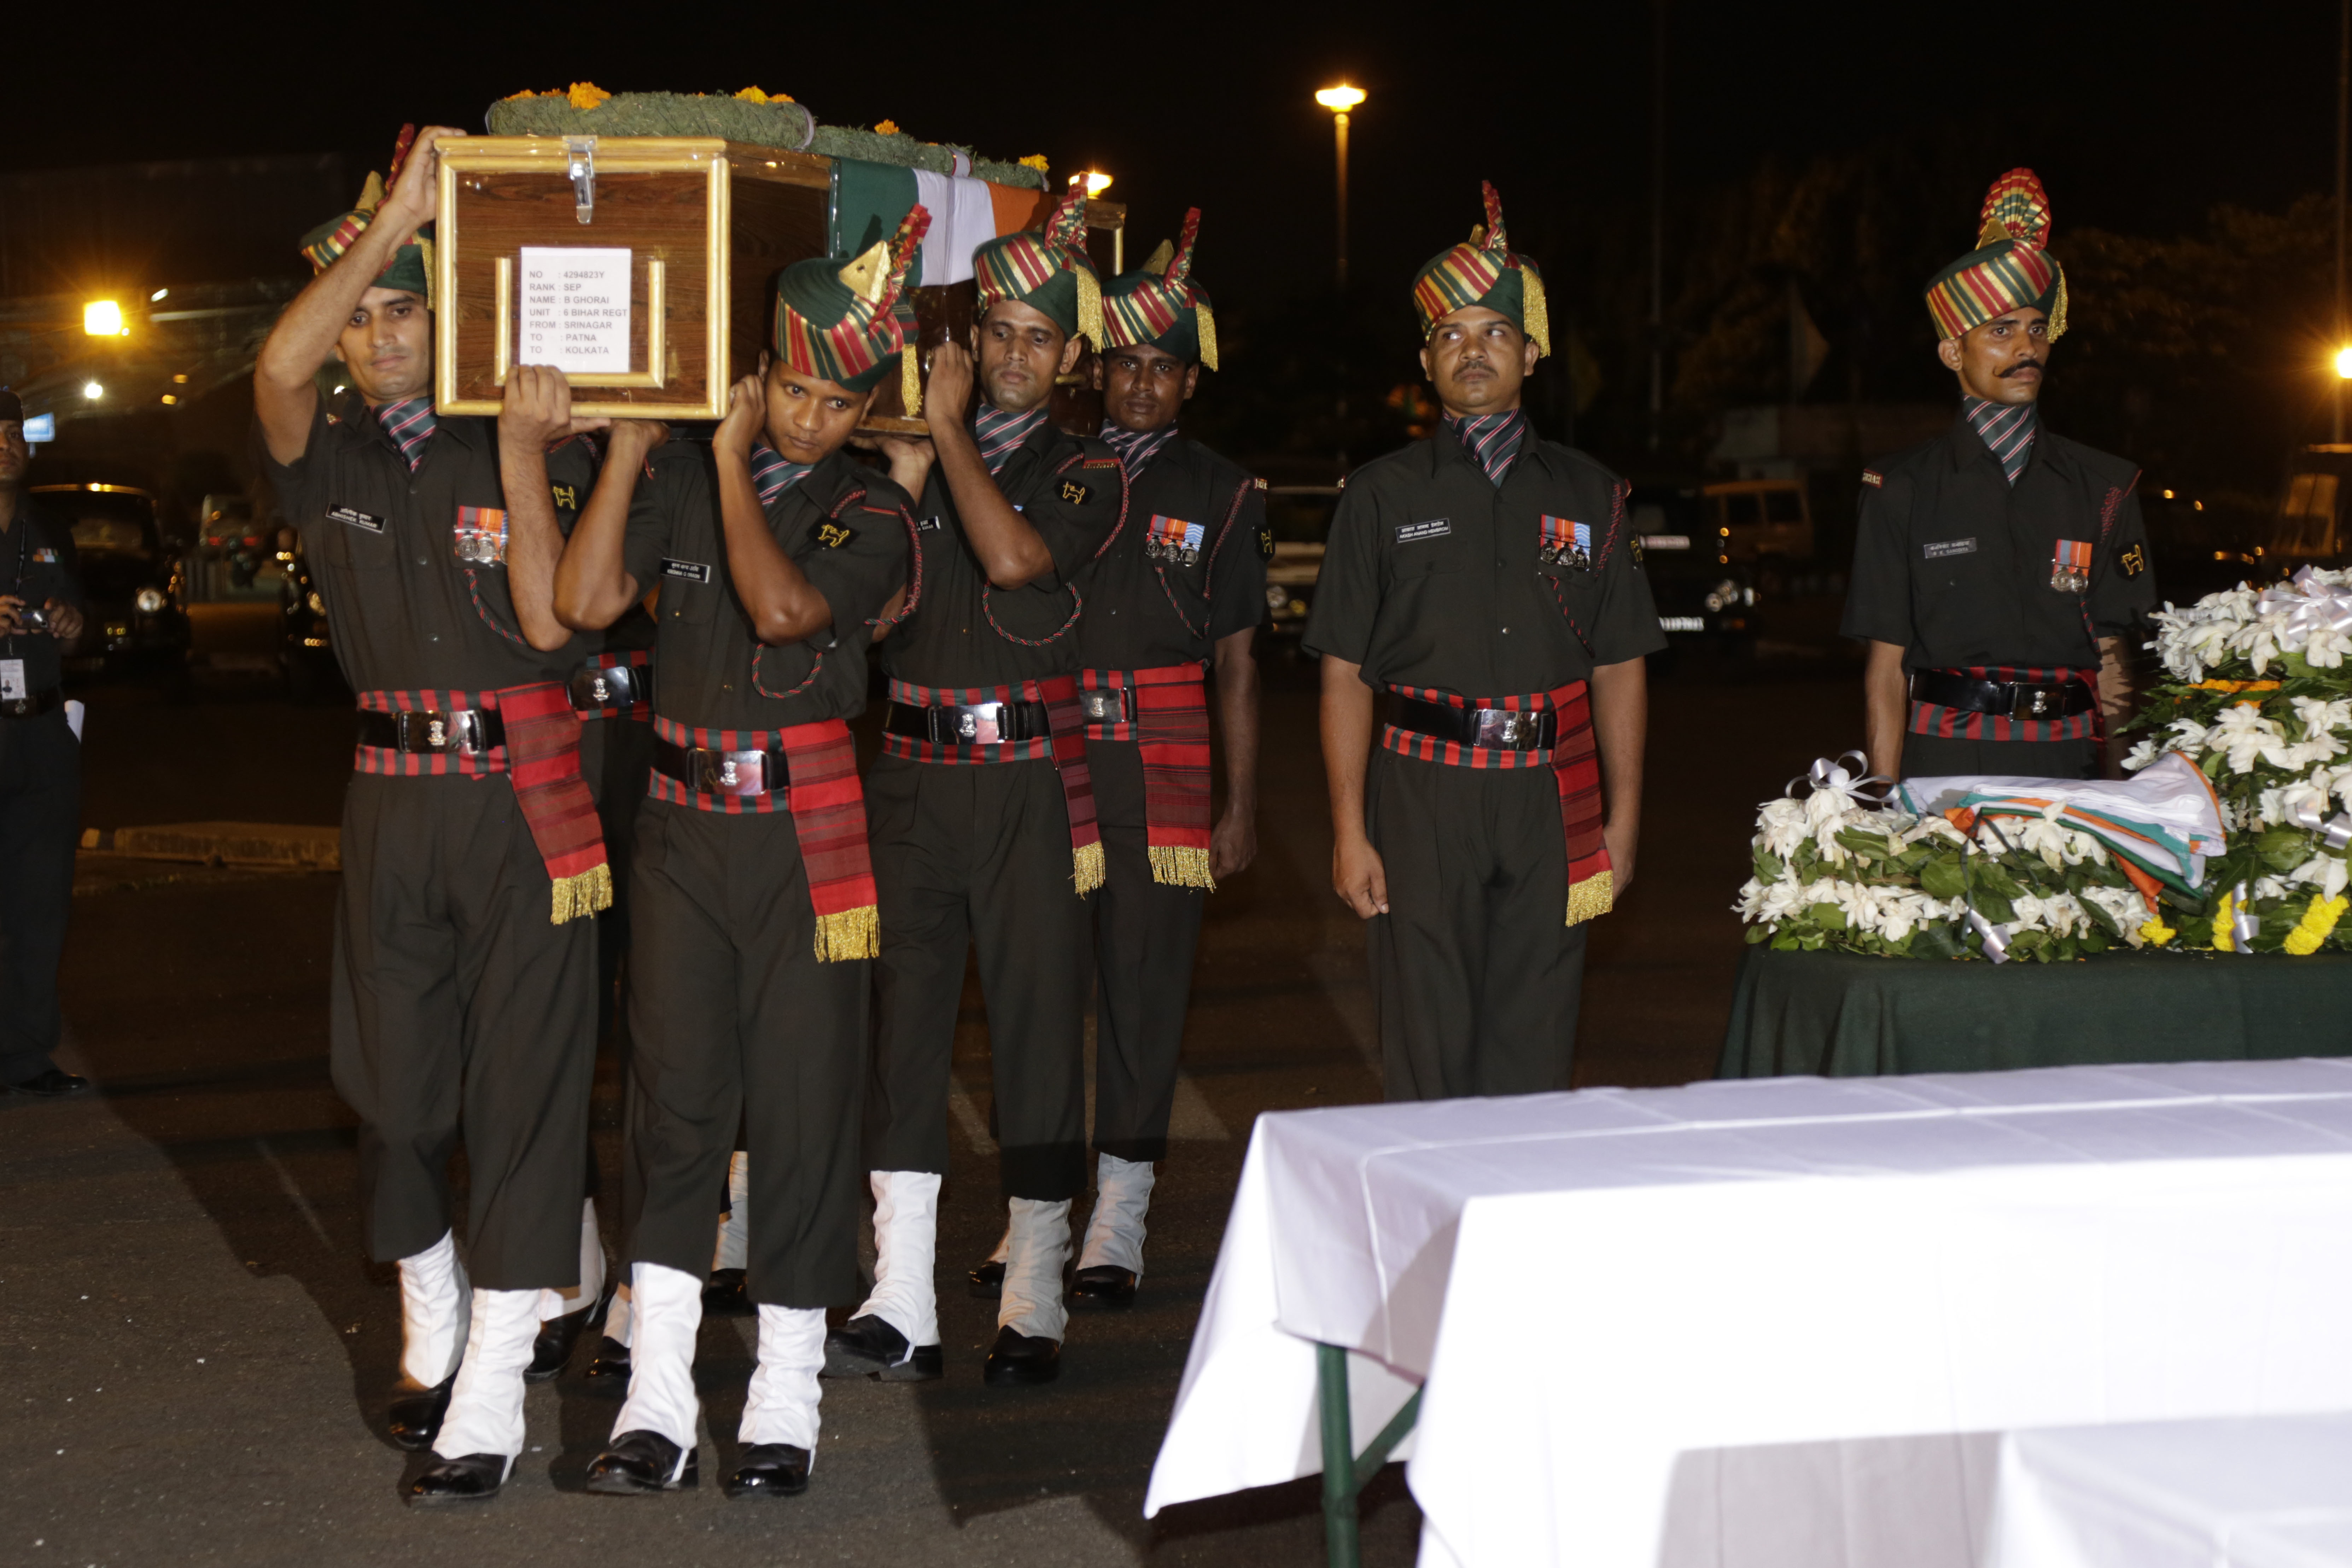 Coffins containing bodies of Indian soldiers G. Doloi and Biaswajit Garai, killed in Sunday's attack at the Indian army base in Kashmir, arrive at the Netaji Subhas Chandra Bose International airport in Kolkata, India, Sept. 19, 2016.